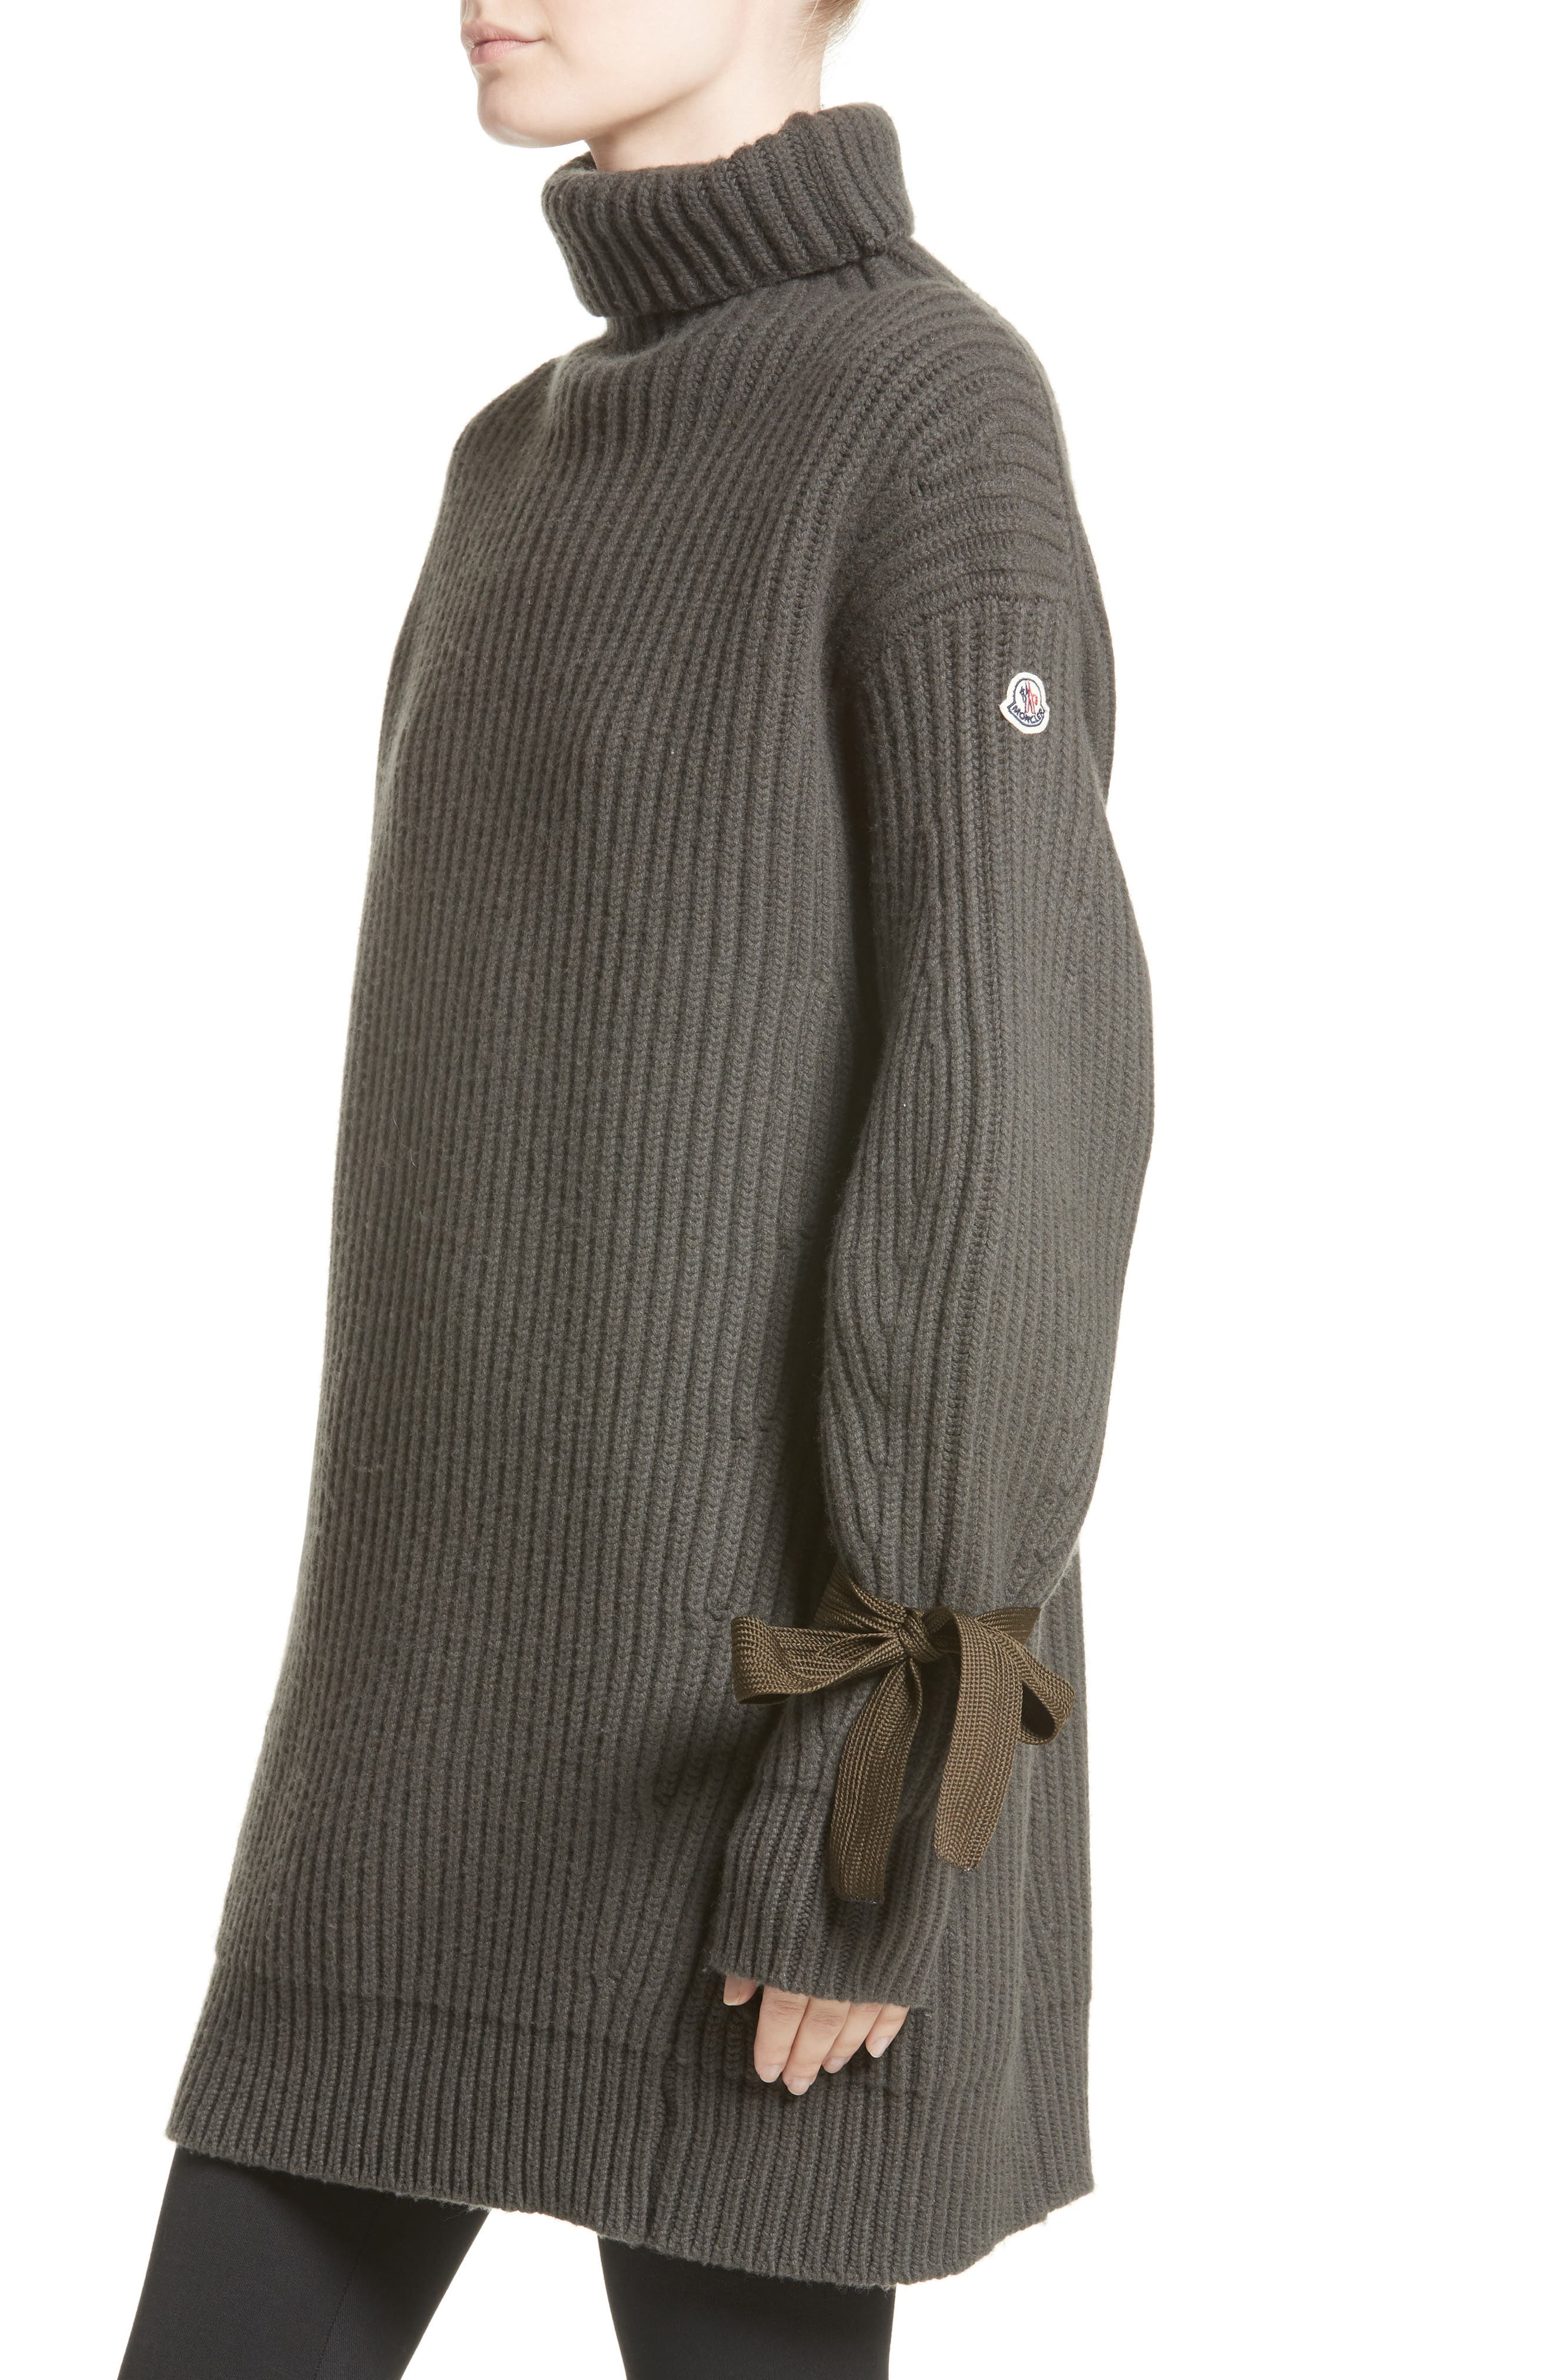 Ciclista Wool & Cashmere Sweater,                             Alternate thumbnail 6, color,                             Olive